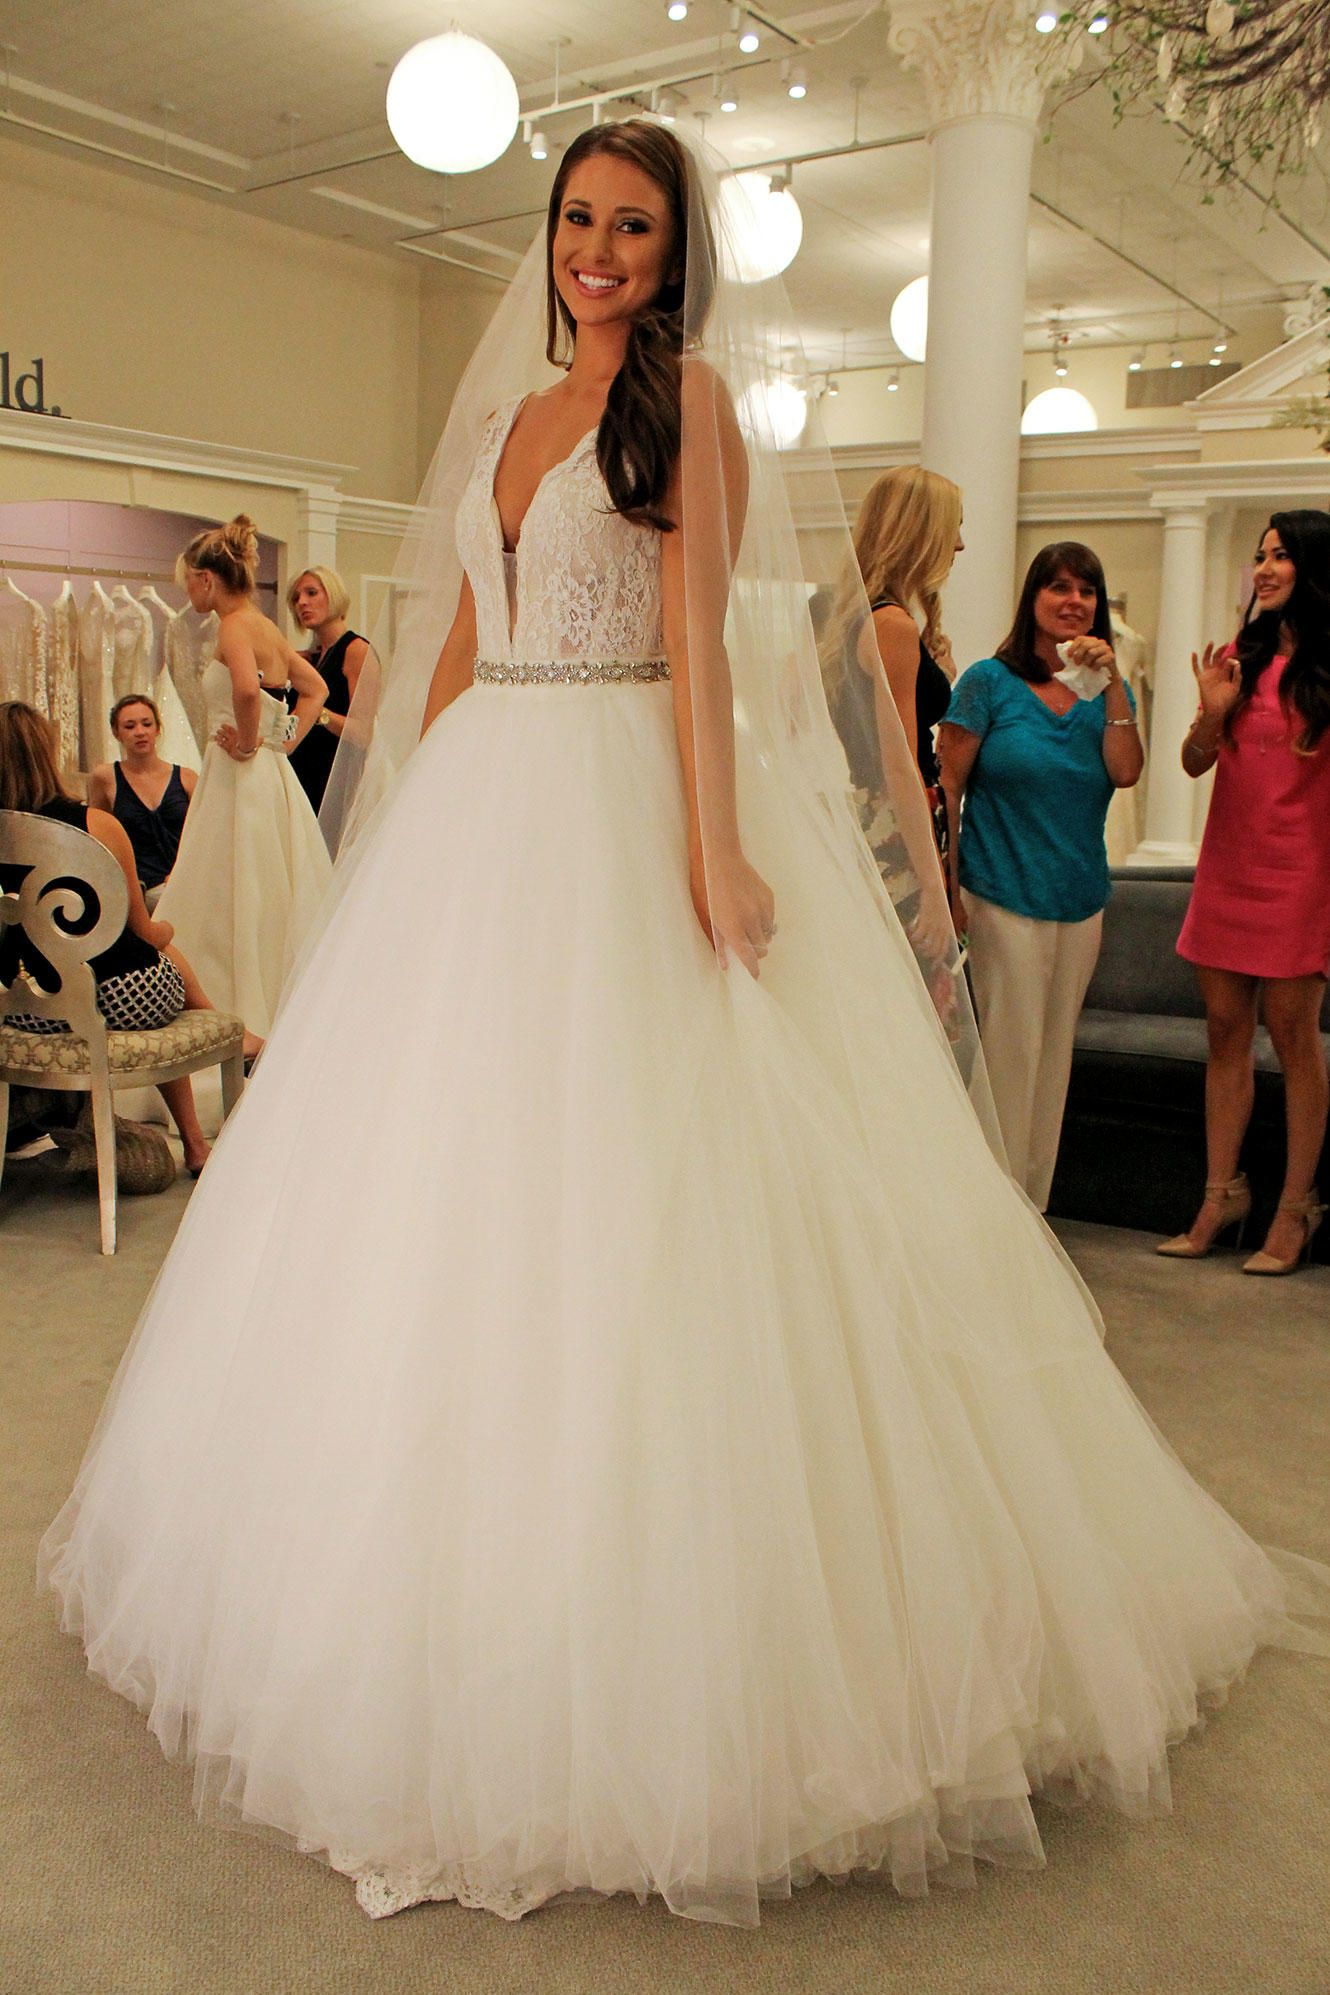 Beautiful Season Featured Dress Pnina Tornai Stle Very form fitted